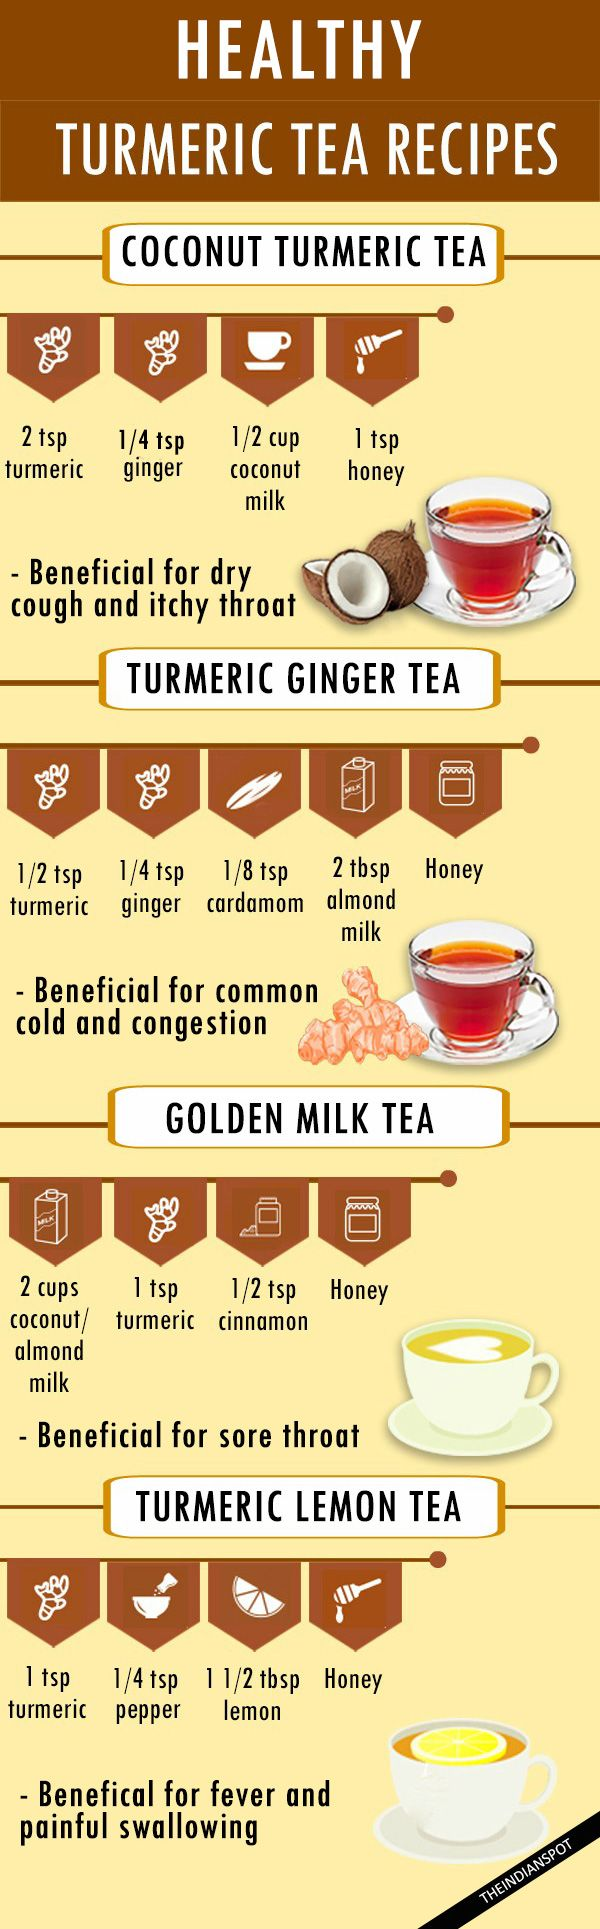 "HEALTHY TURMERIC TEA RECIPES //20% OFF Sale! Use coupon ""Pinterest20"" at getcutea.com to order CUTEA Herbal Teas!"